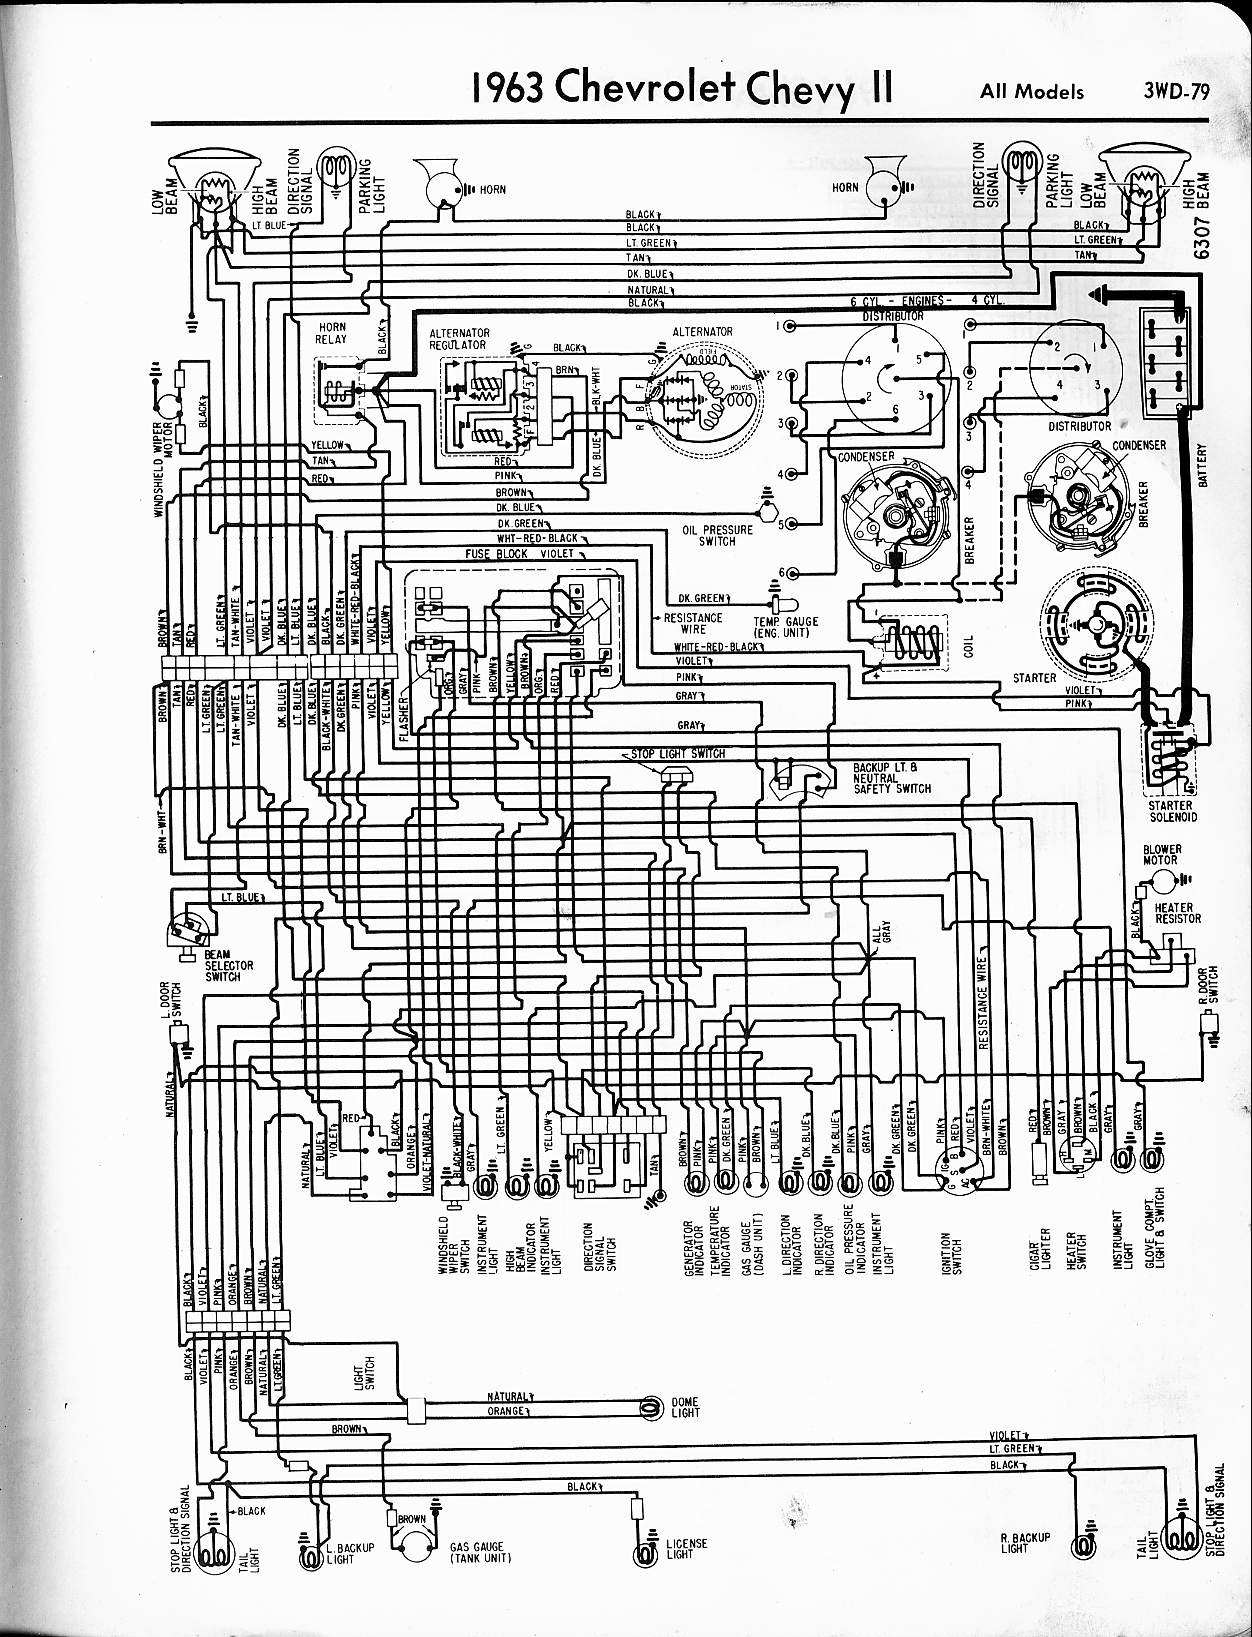 MWireChev63_3WD 079 1963 impala wiring diagram 1957 chevy bel air wiring diagram 64 Chevy Impala Wiring Diagram at webbmarketing.co